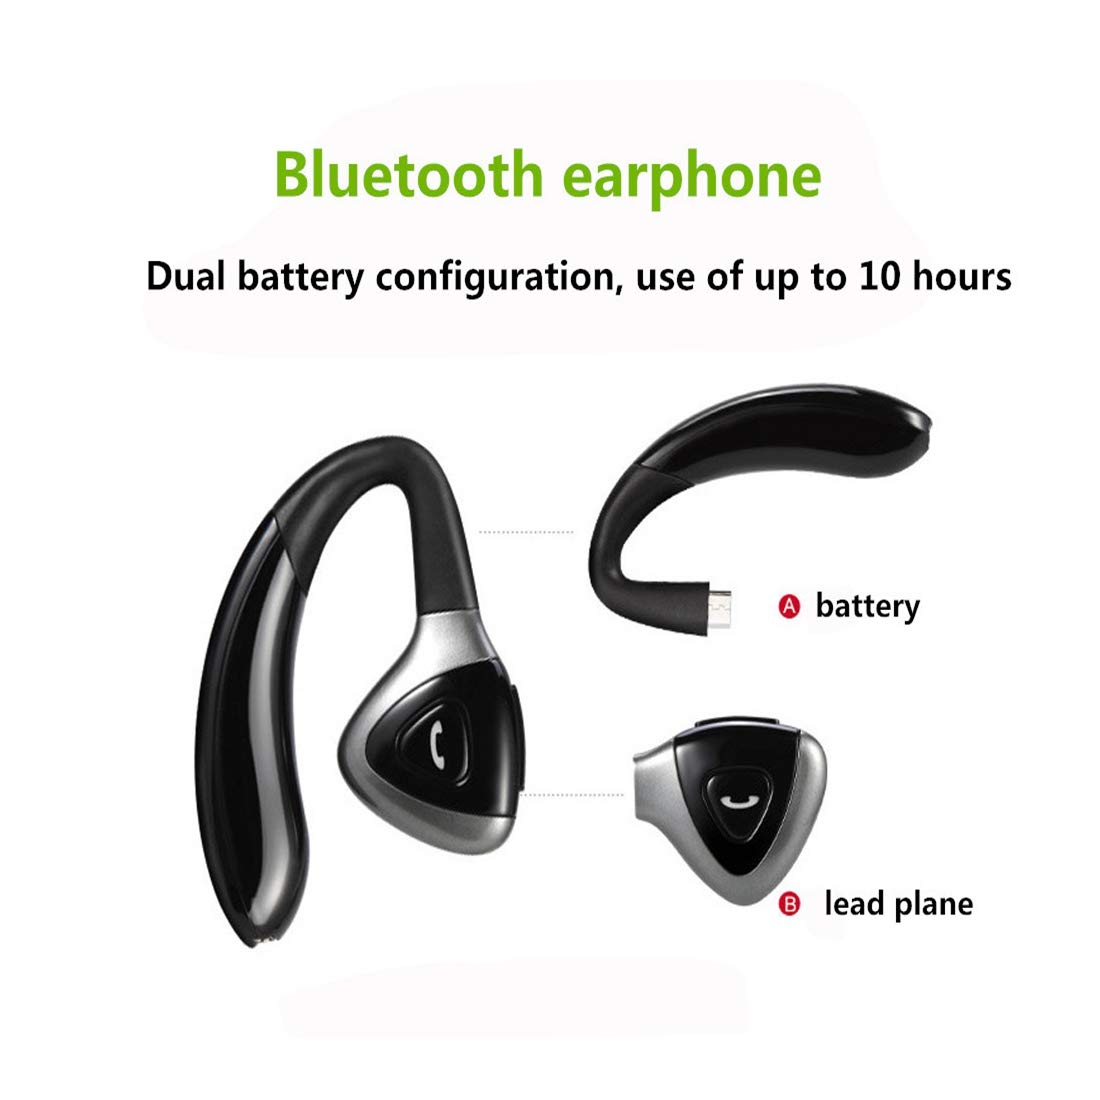 Wireless Earbuds, Bluetooth 4.1 Headphones TWS Stereo Wireless Earphones Sweatproof Bluetooth Earbuds in-Ear Headset Earphones with Case Built-in Mic Deep Bass for Sports Shohotop (Black)